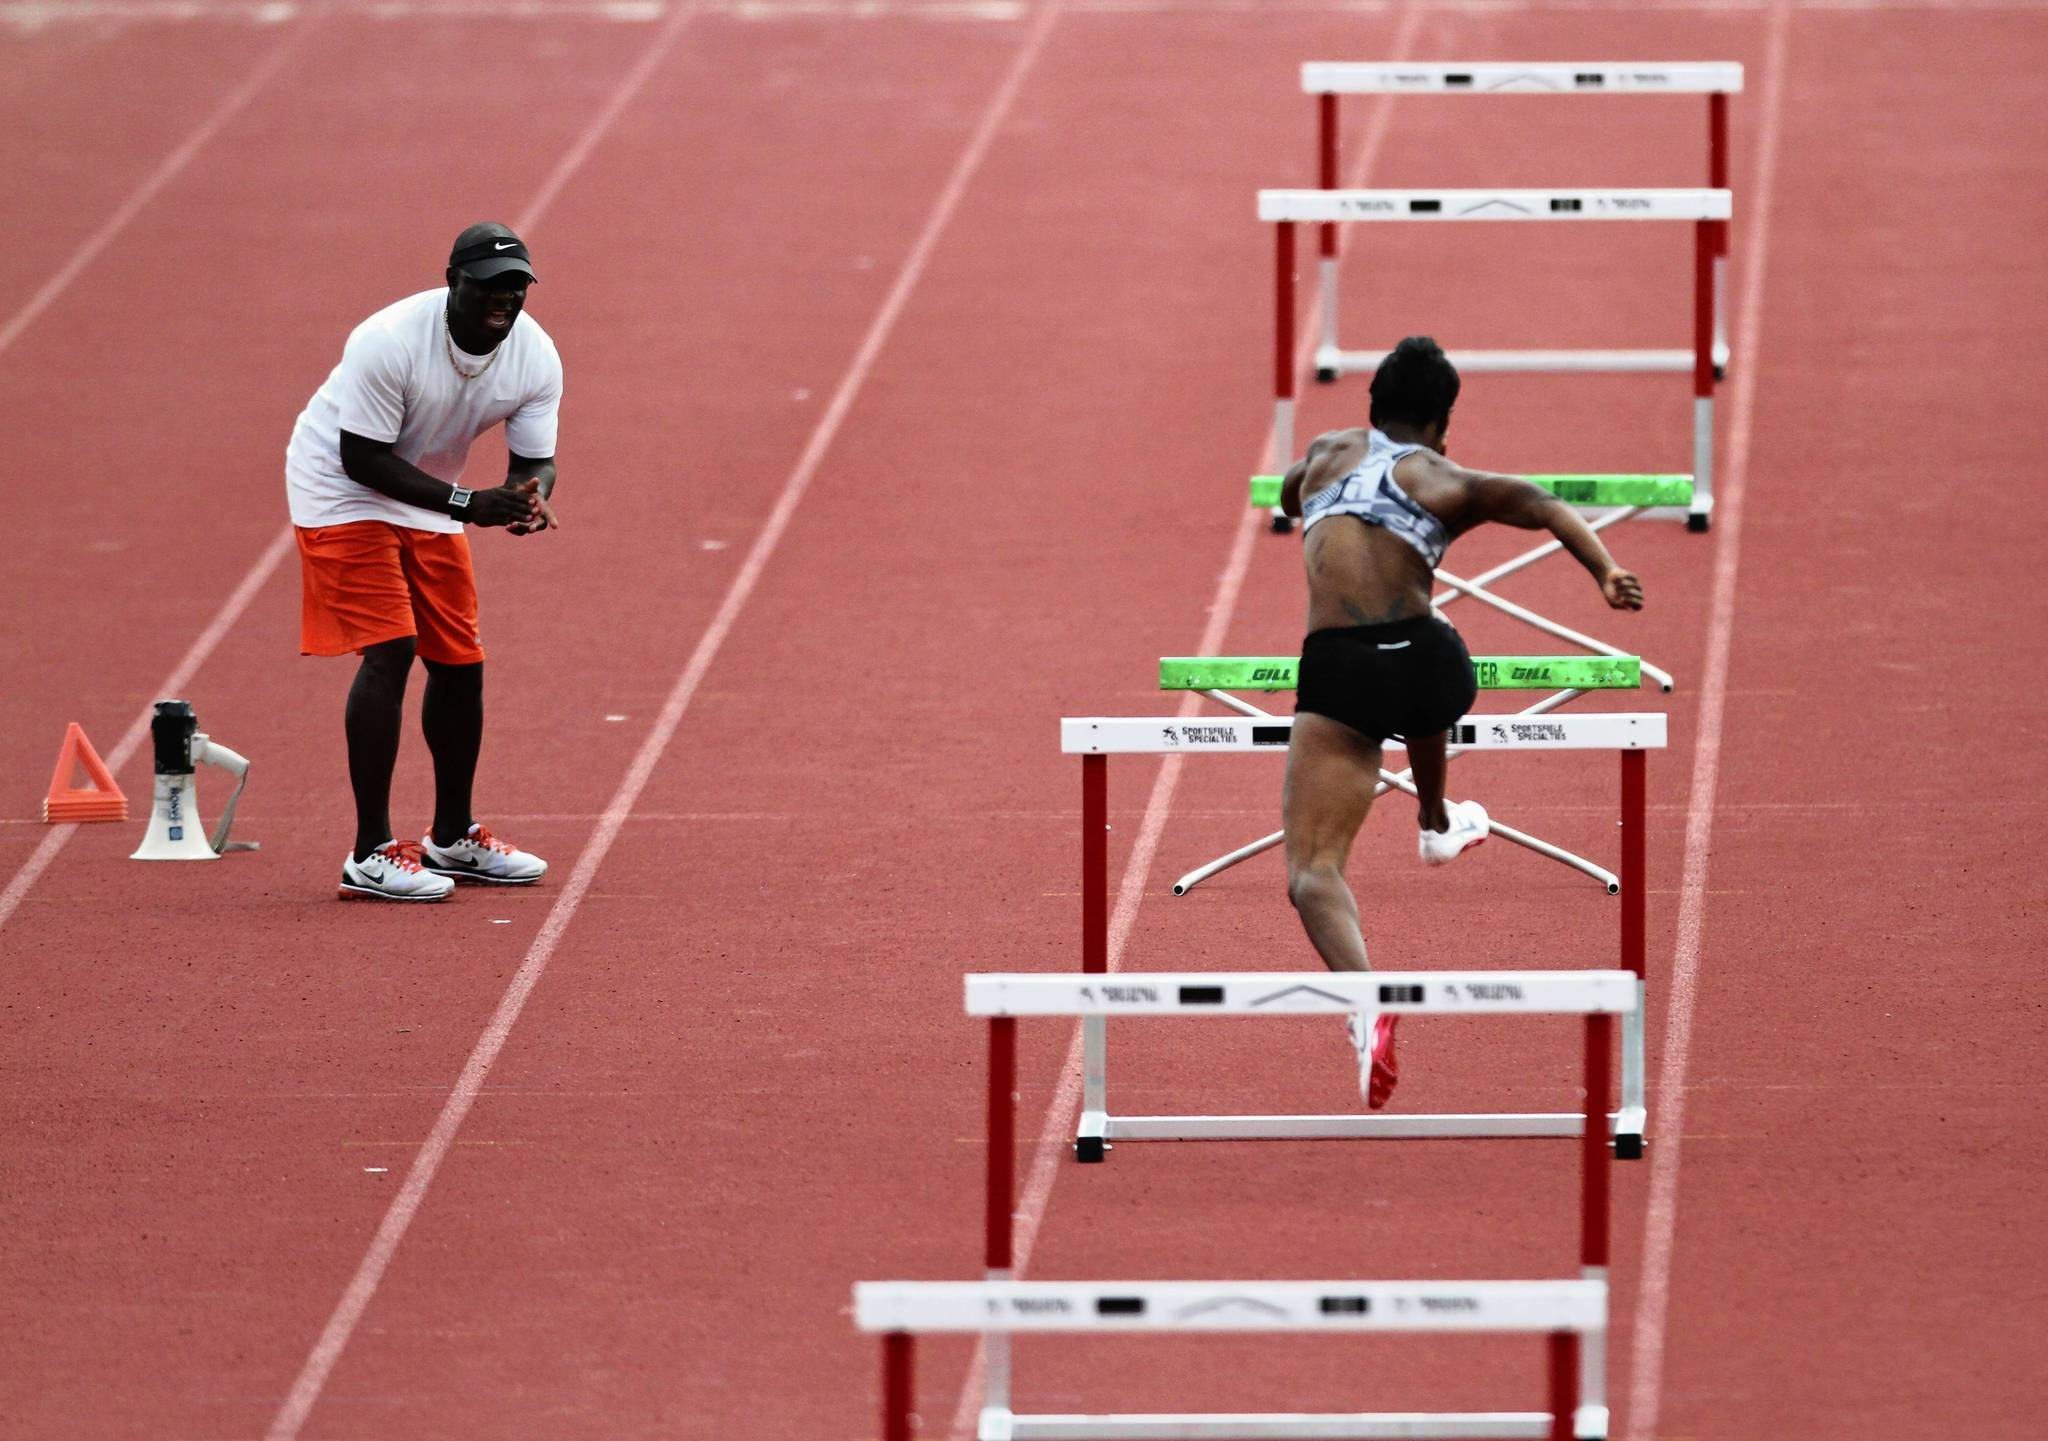 Three-time Olympian Dennis Mitchell, left, is training a group of international athletes for the upcoming Olympic trials and summer Olympics, including USA hurdler Kellie Wells, at right, at the National Training Center in Clermont, Fla. Thursday, June 7, 2012.   (Gary W. Green/Orlando Sentinel) ORG XMIT: B582153988Z.1